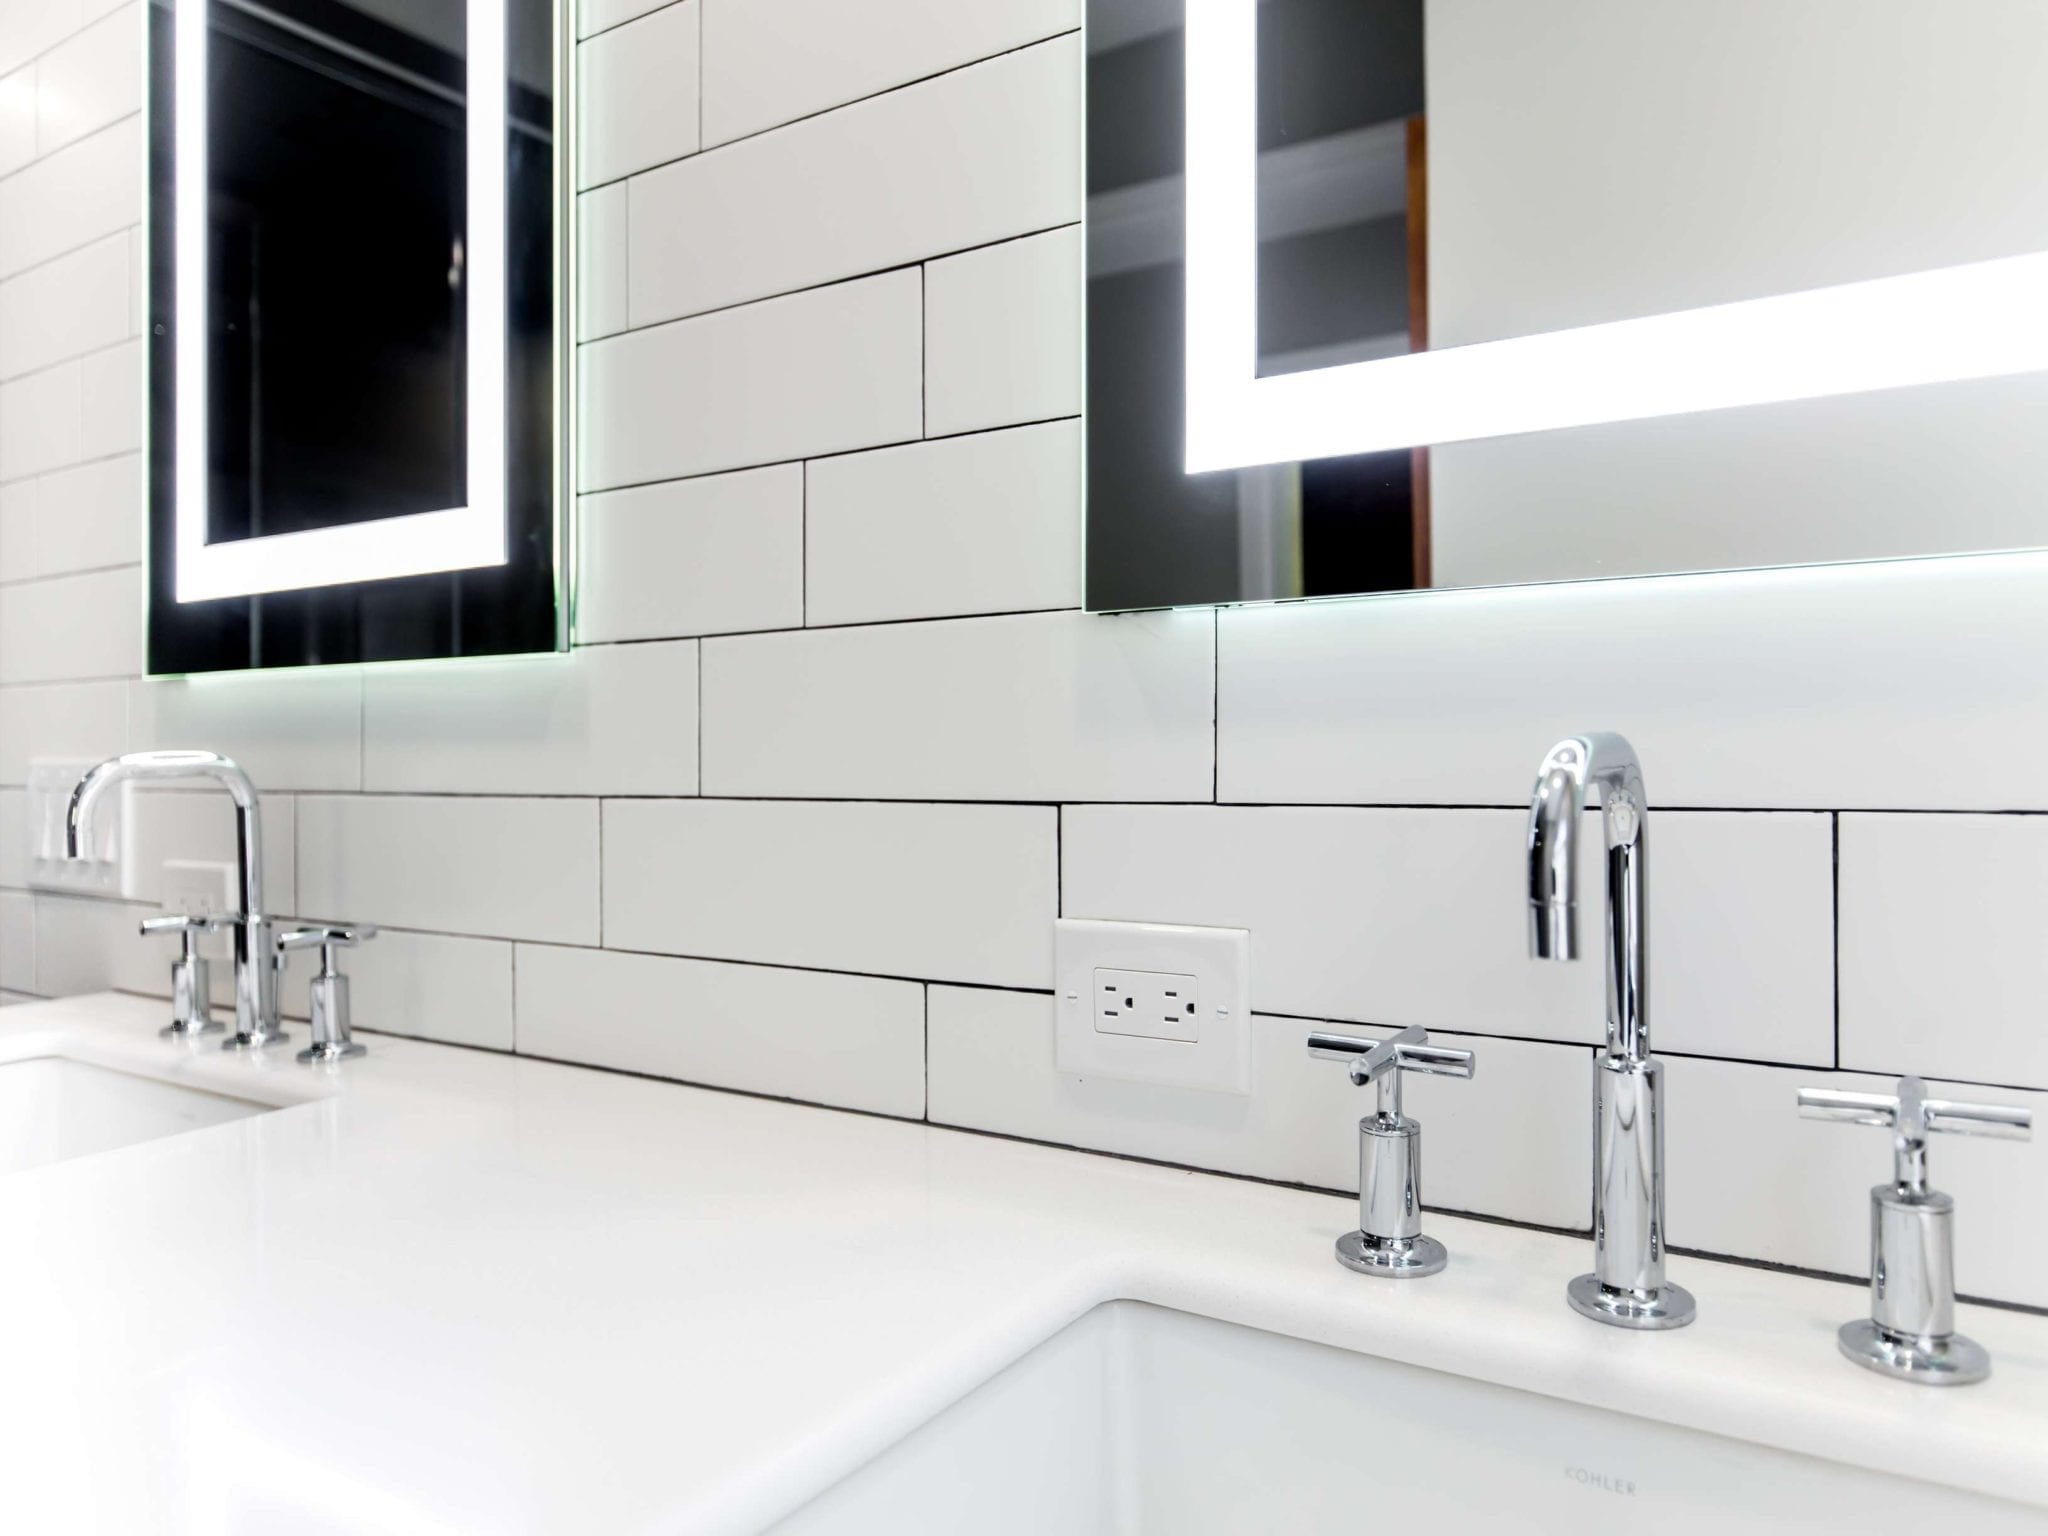 Bathroom Remodeling Archives - Renowned Renovation